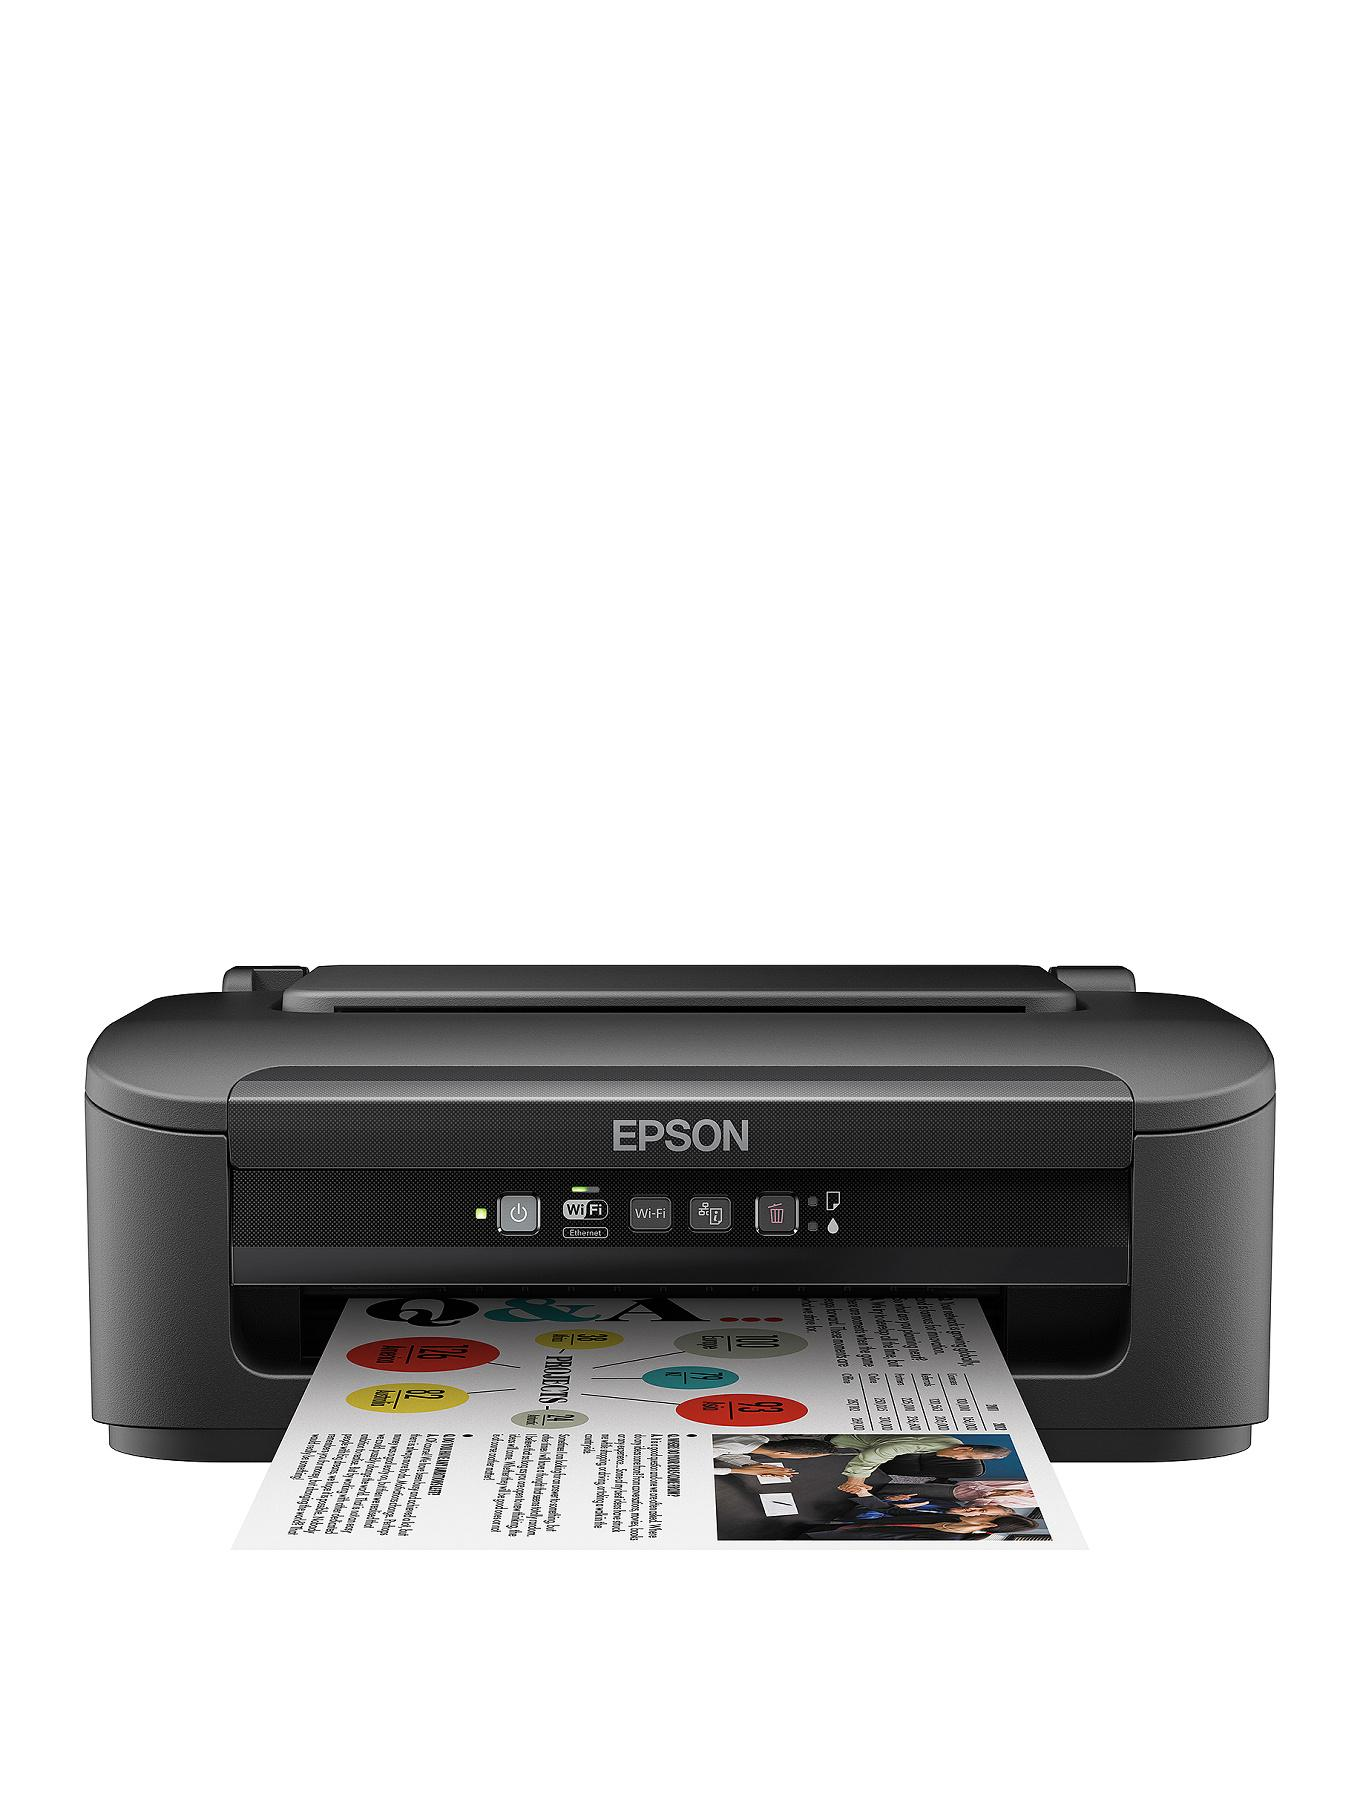 Epson WorkForce WF-2010W Printer - Black